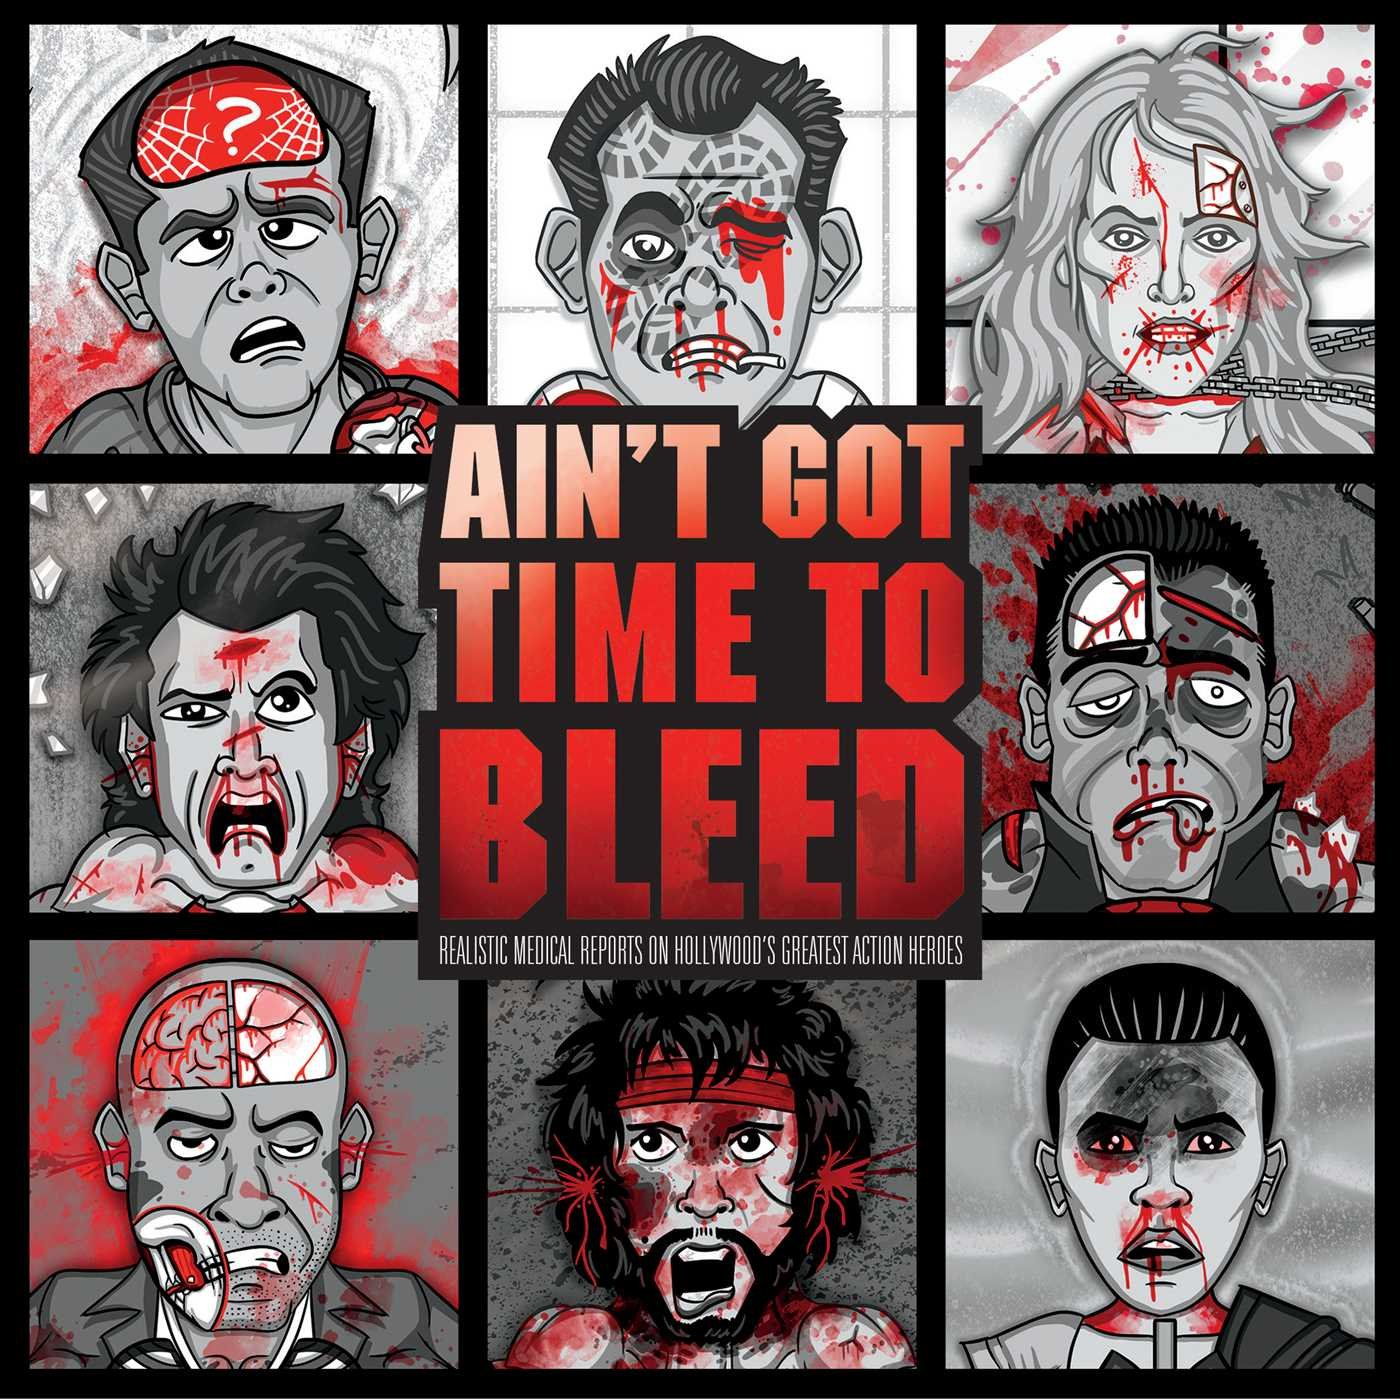 Ain't Got Time to Bleed: Medical Reports on Hollywood's Greatest Action Heroes     (Humor)